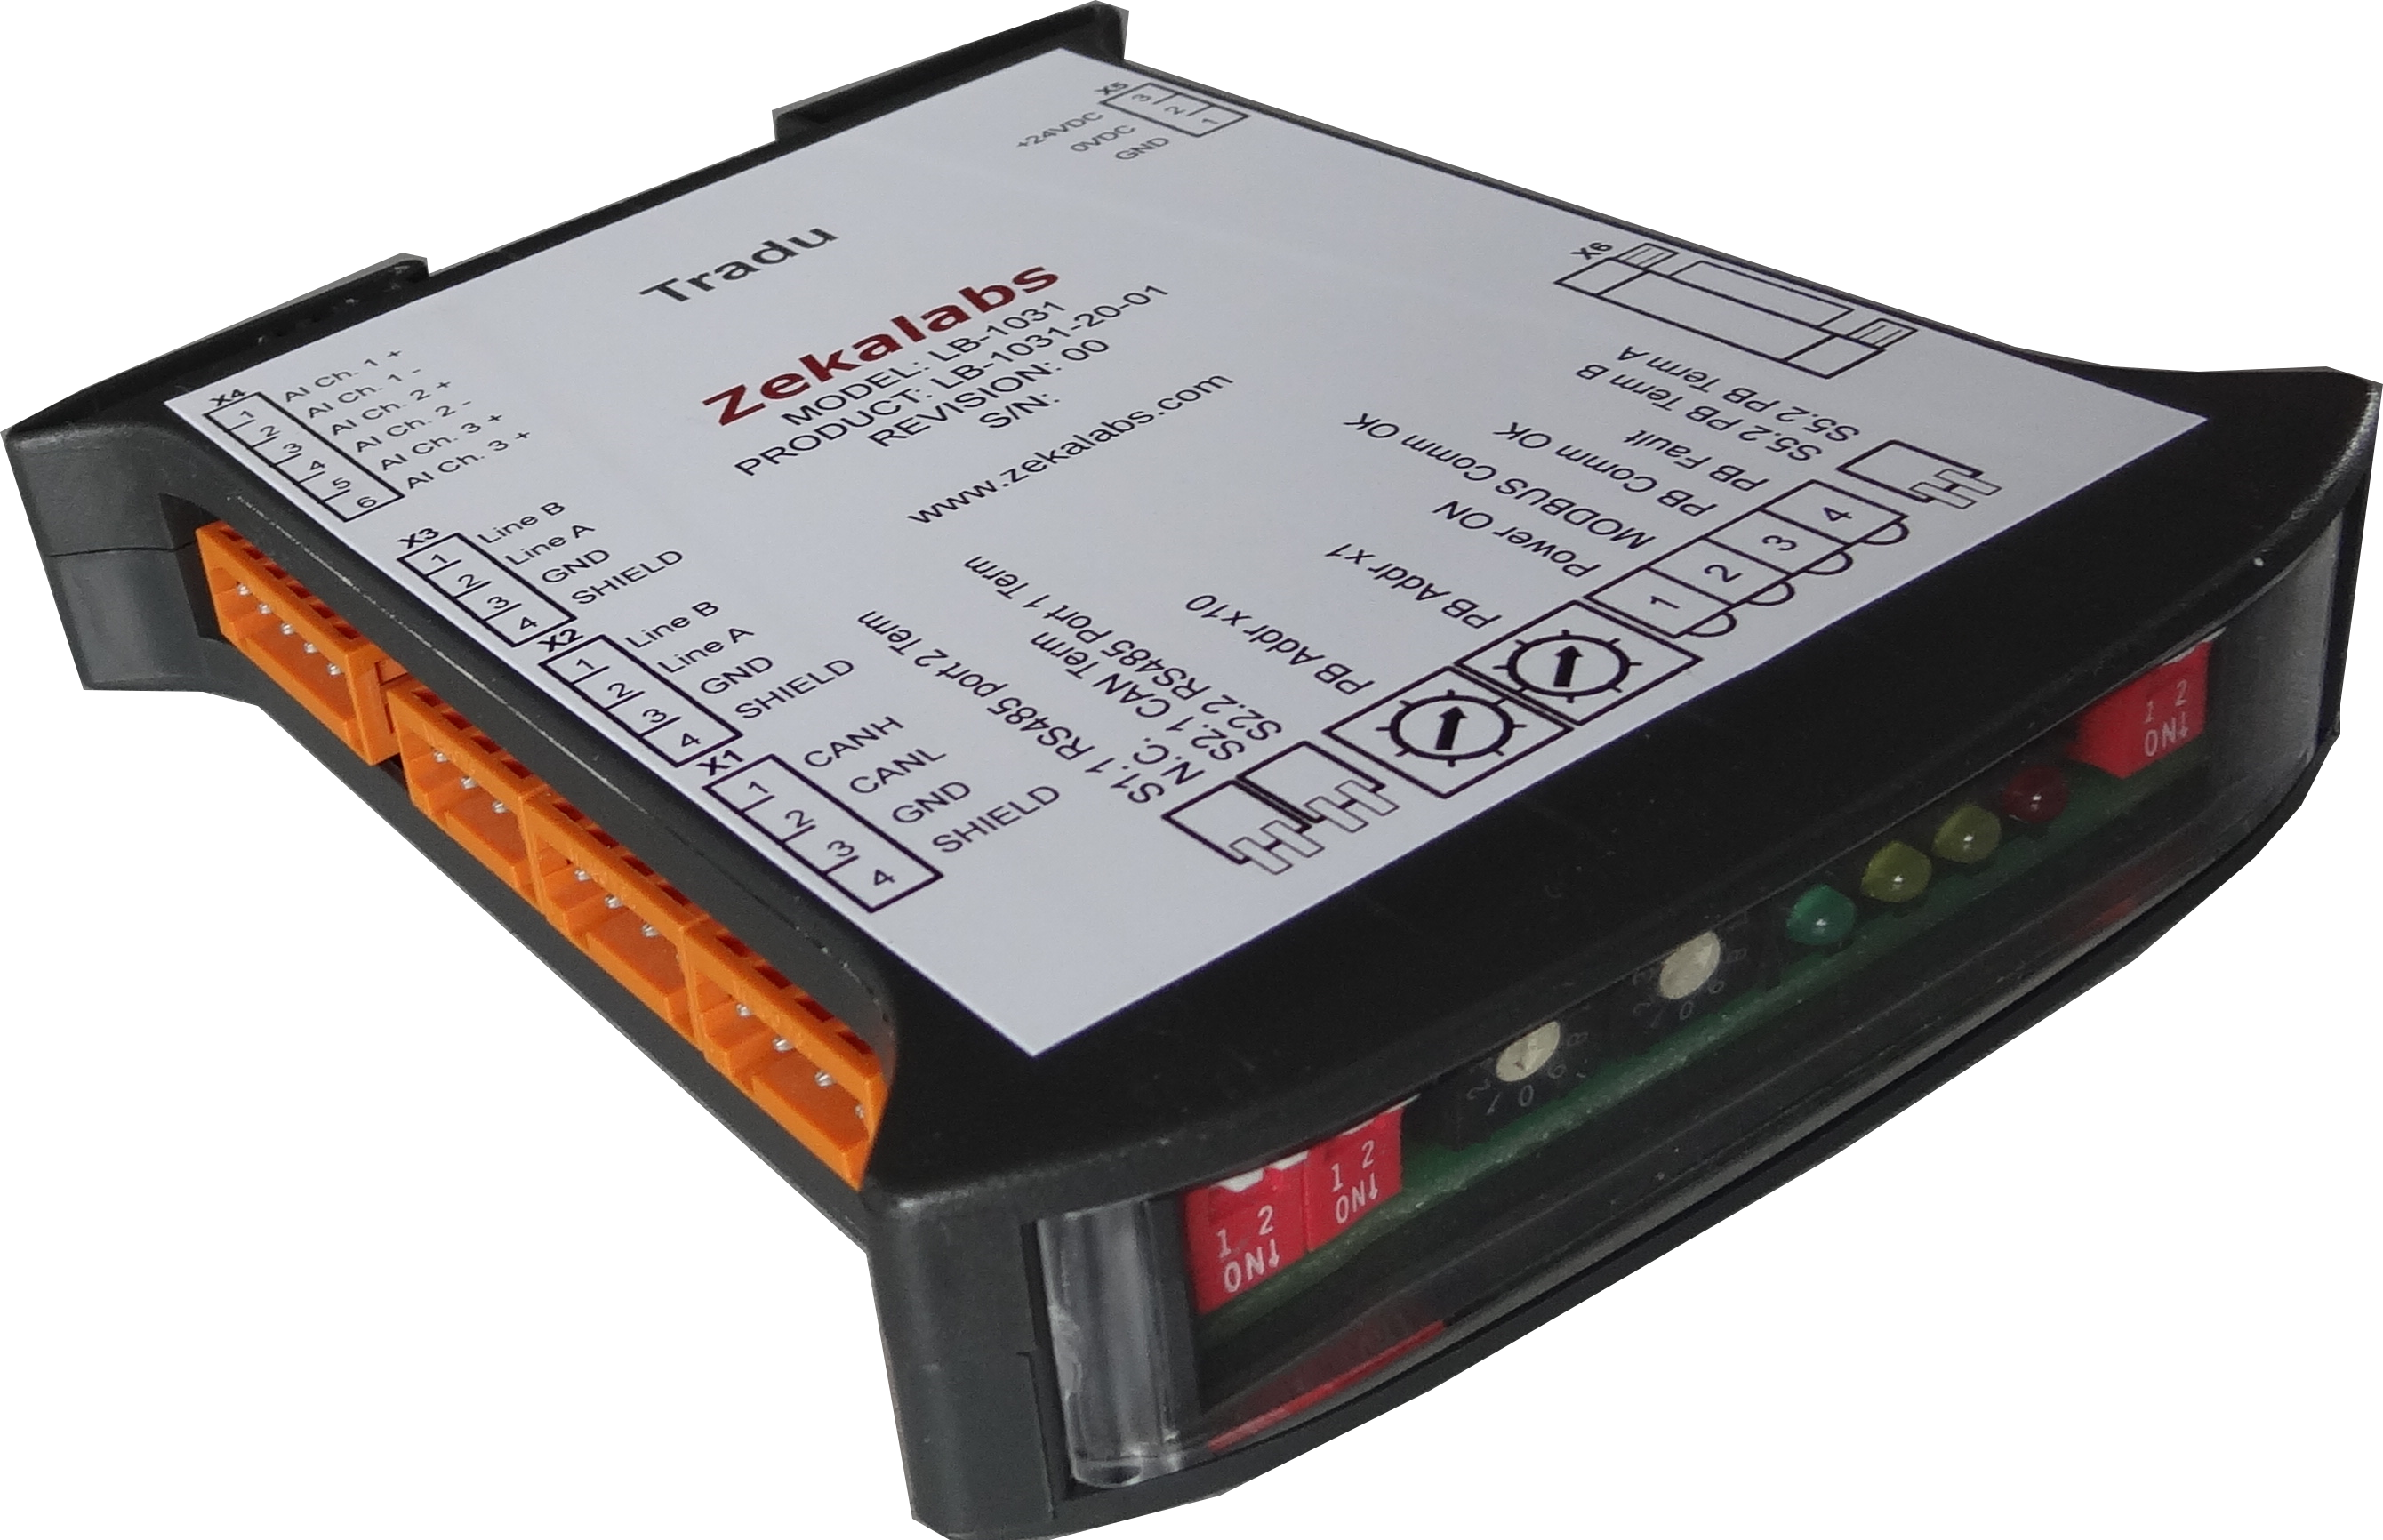 Modbus to Profibus Converter from Zekalabs